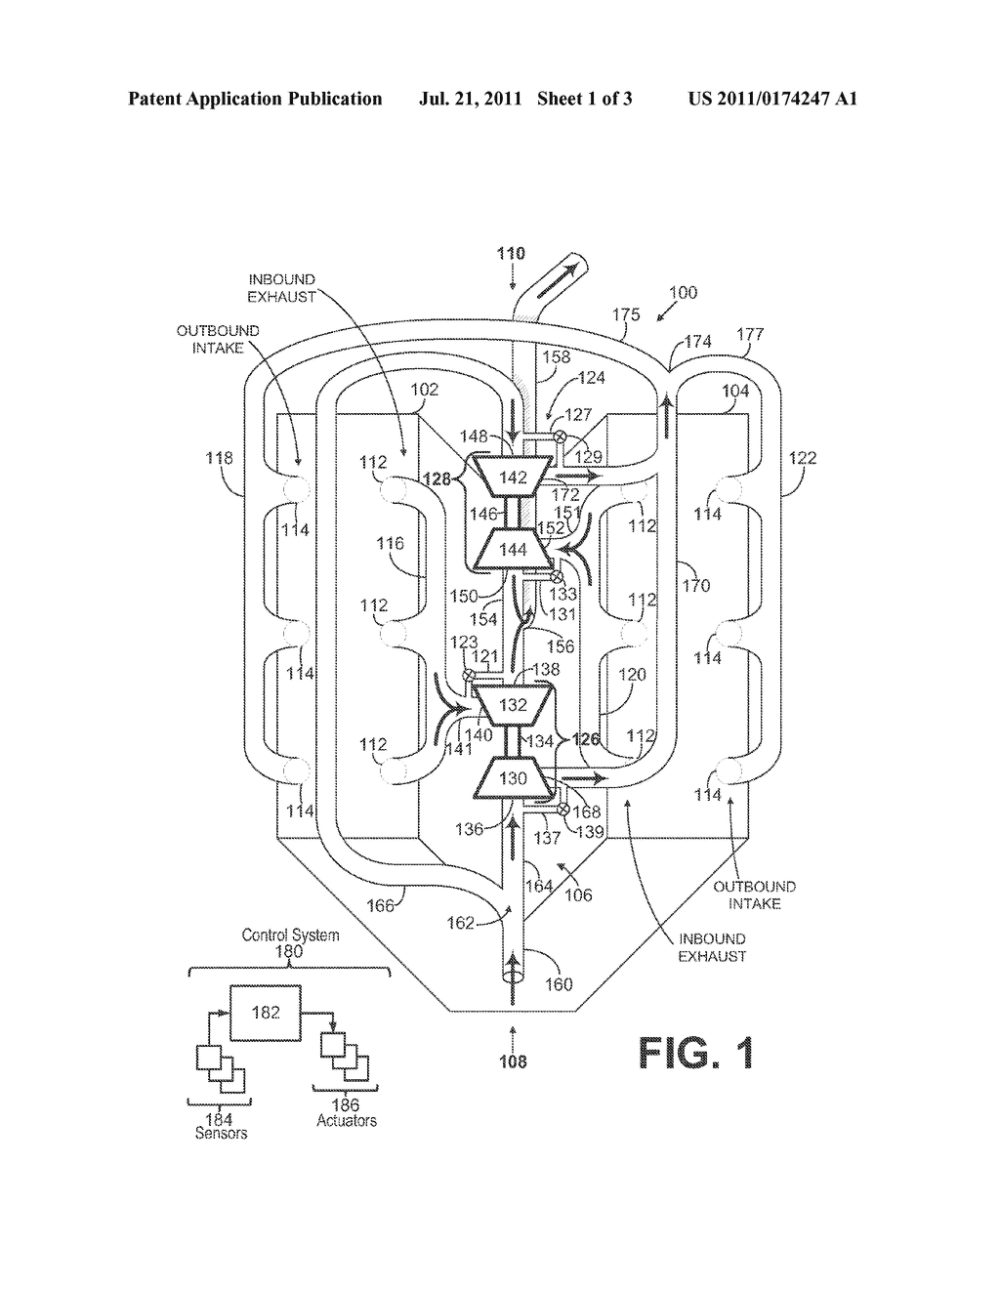 medium resolution of central turbocharger mounting configuration for a twin turbo engine diagram schematic and image 02